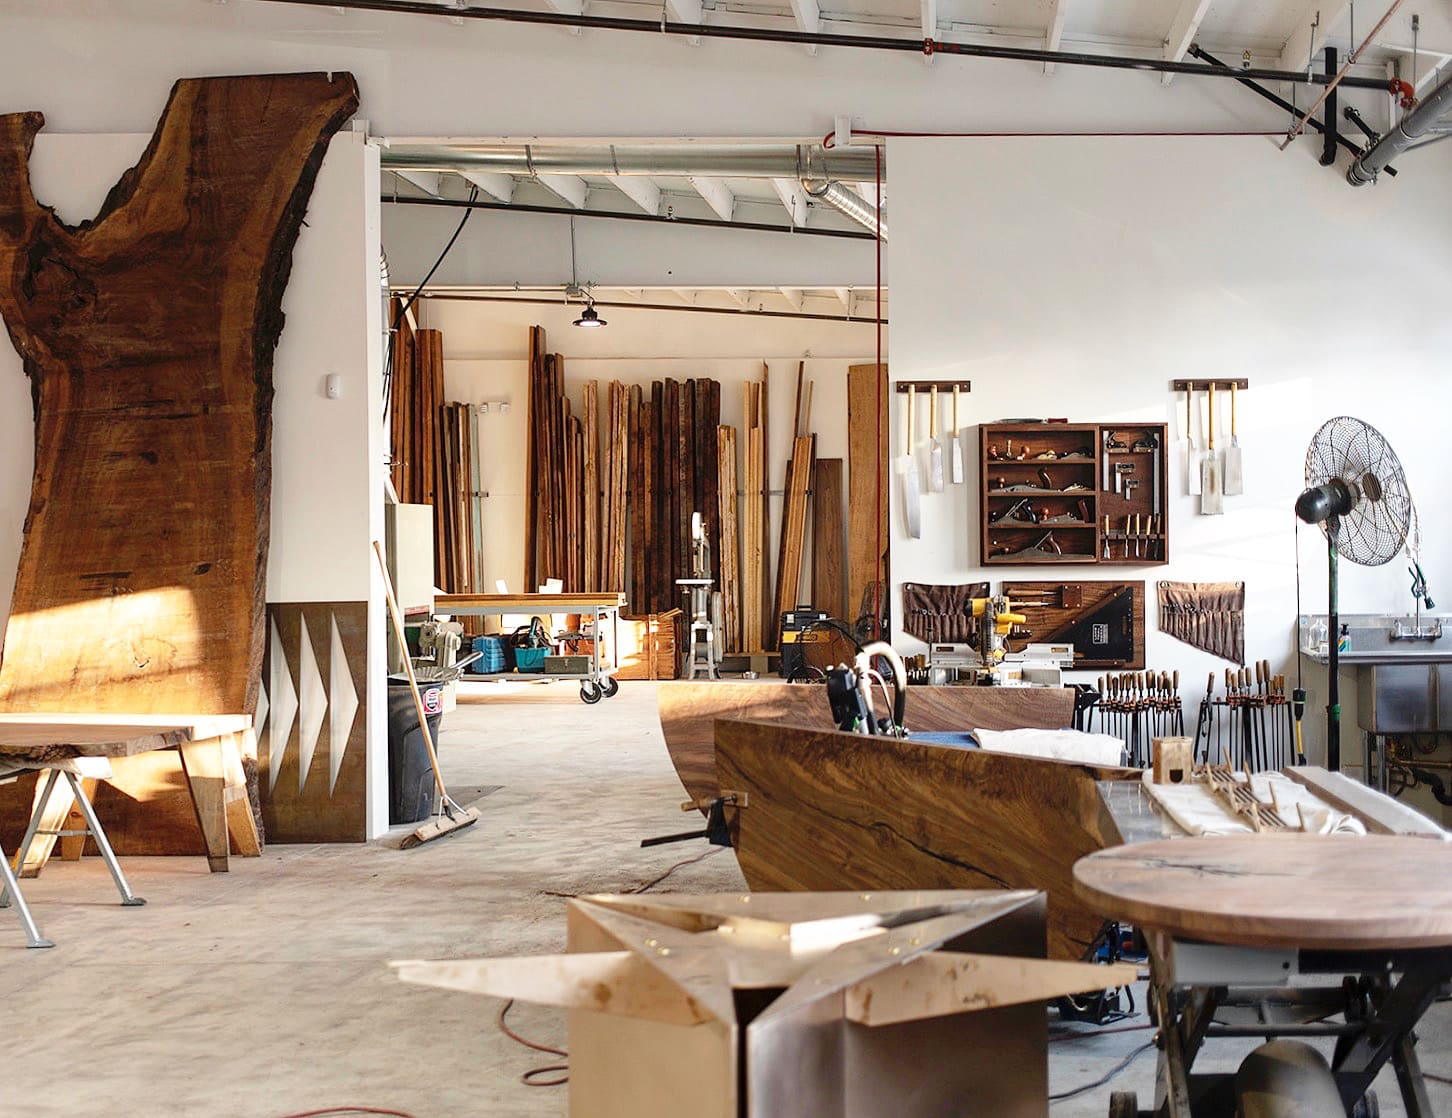 The new Firewood Collective space in Santa Monica